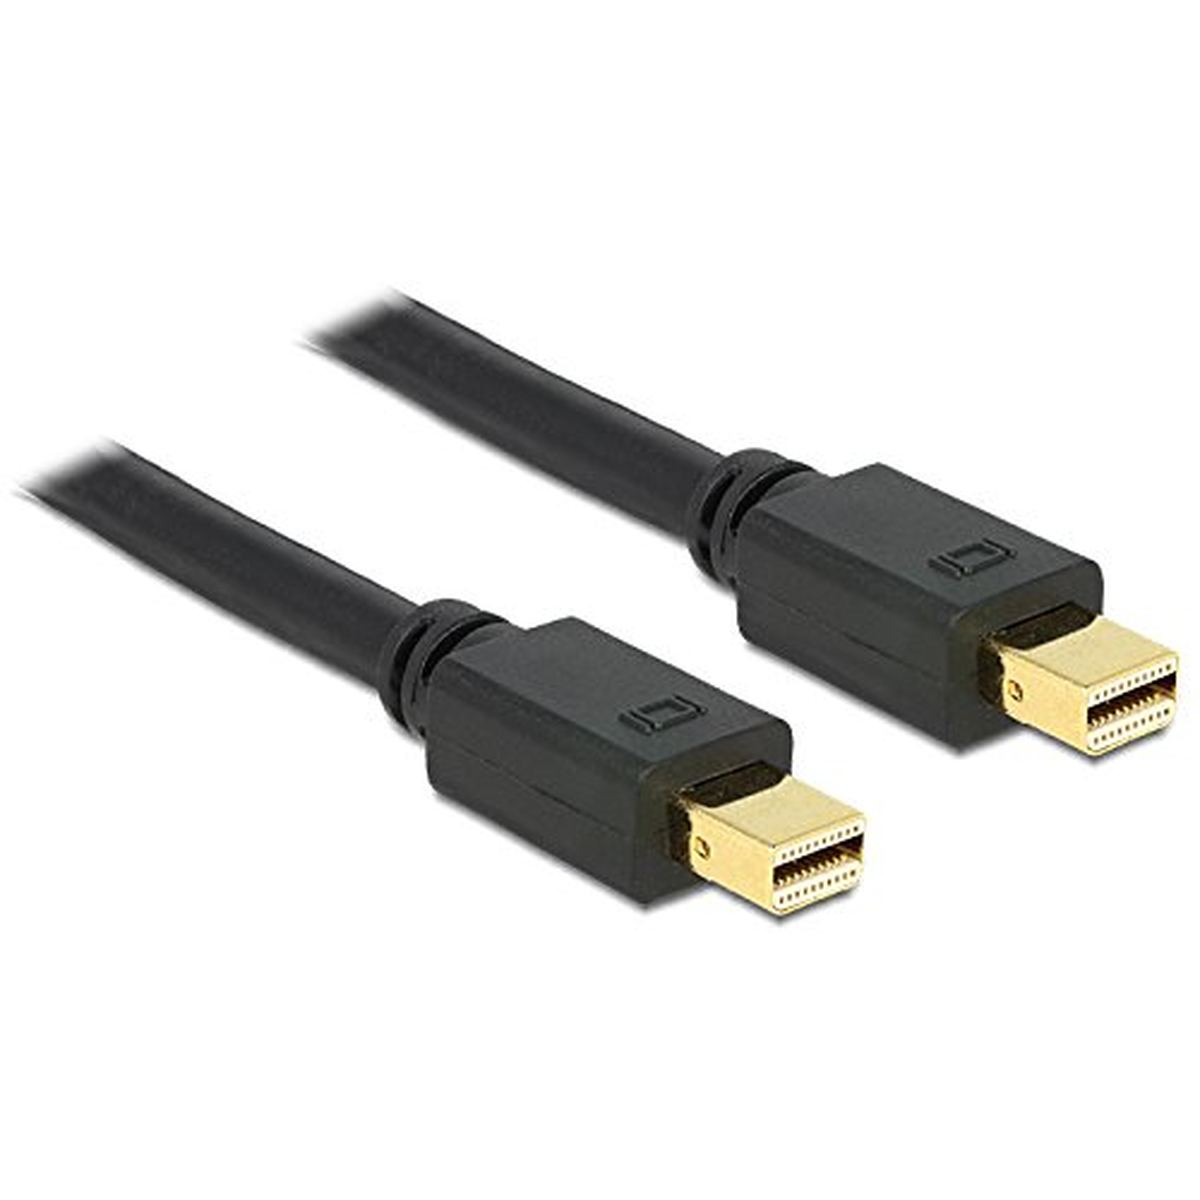 DeLOCK Kabel mini DisplayPort St > 2,0 m schwarz